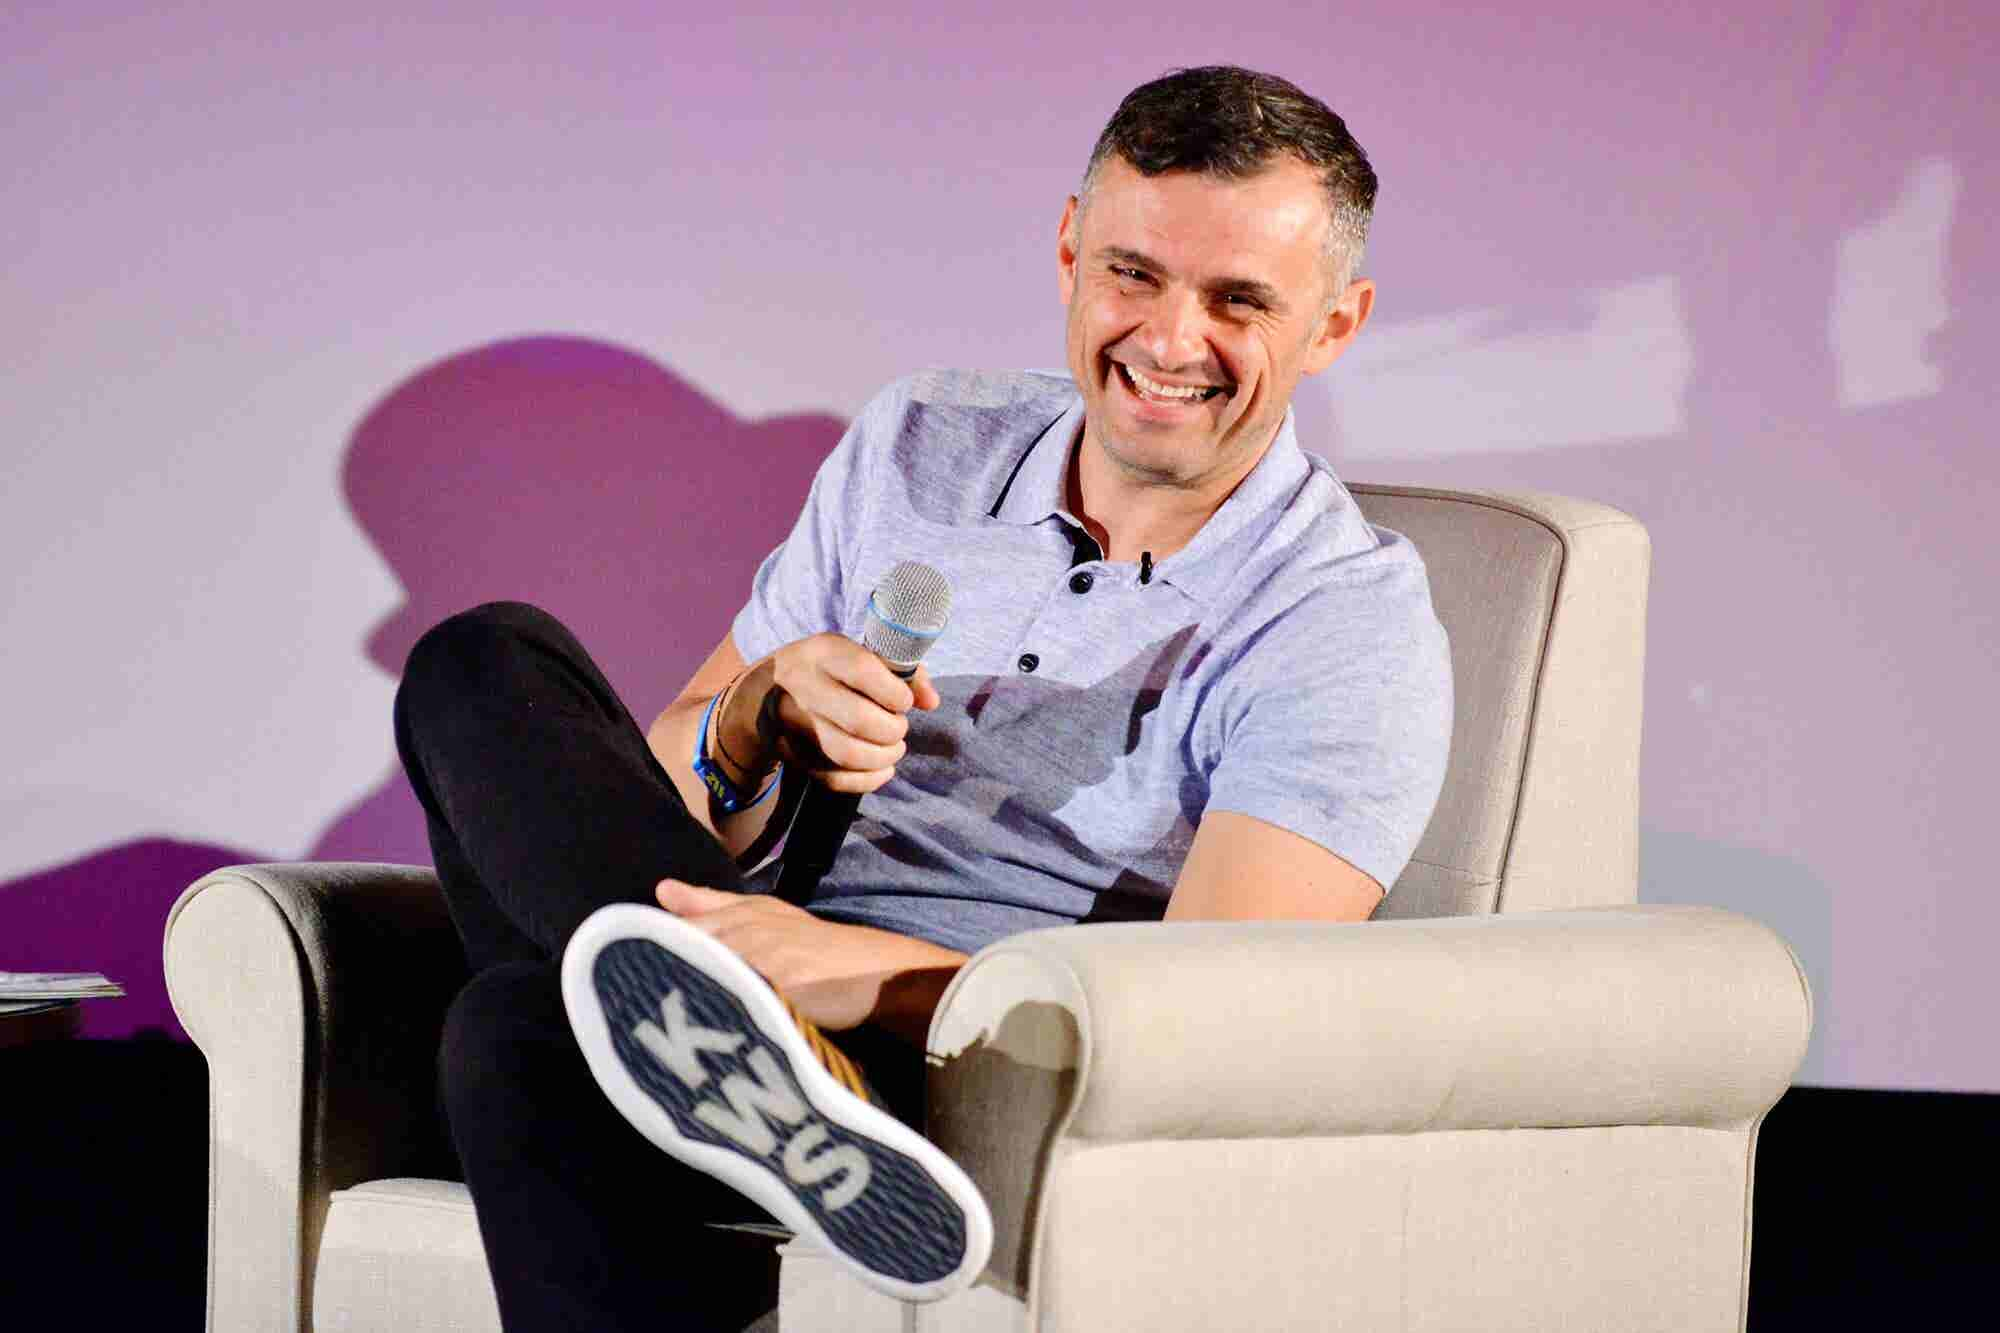 7 Game-Changing Social Media Tips From Gary Vaynerchuk to Grow Your Bu...